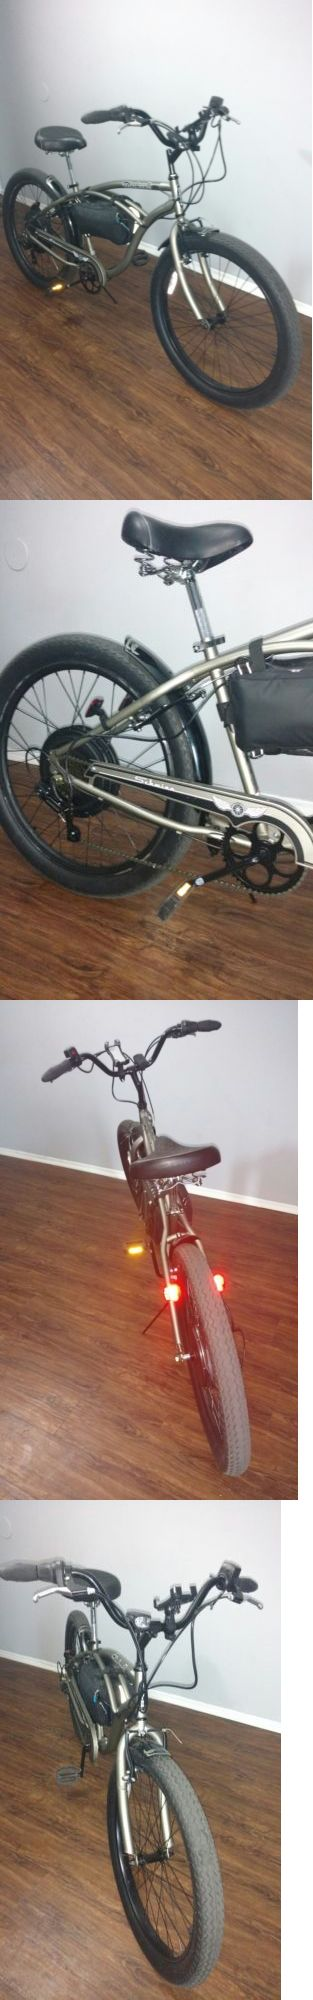 Electric Bicycle Components 177814: Custom Ebike Cruser -> BUY IT NOW ONLY: $800 on eBay!